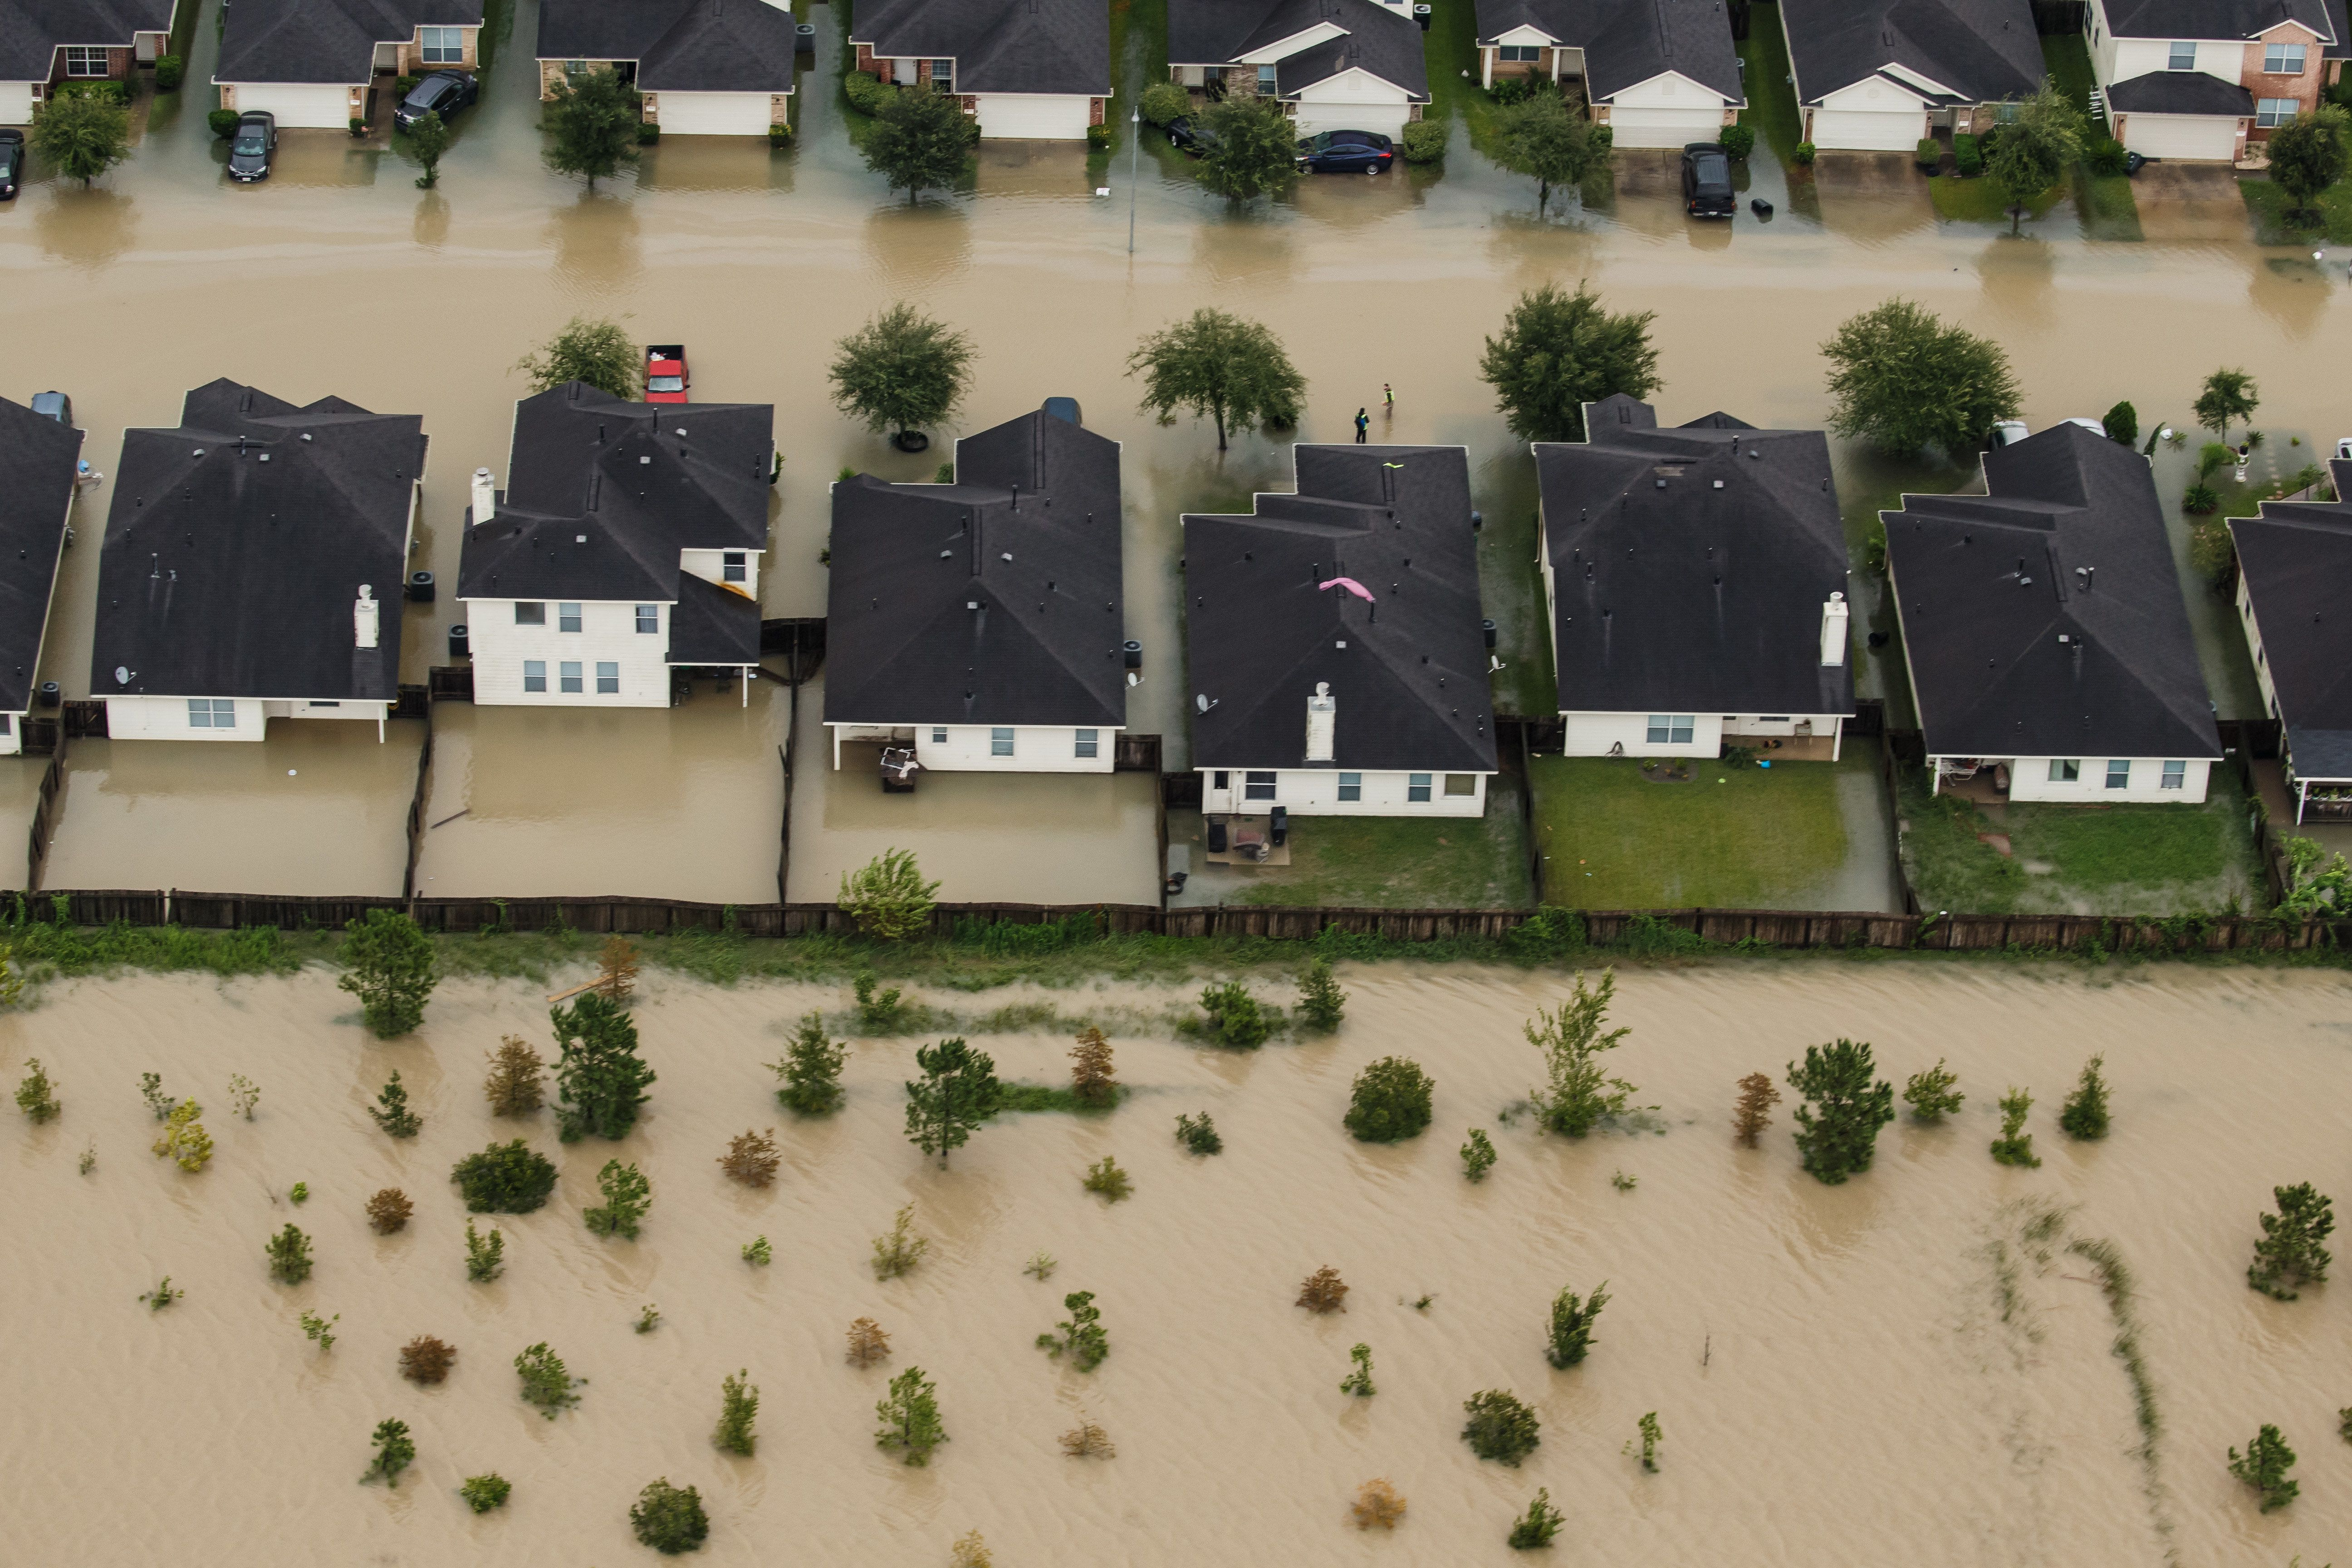 HOUSTON, TEXAS -- TUESDAY, AUGUST 29, 2017: Residential neighborhoods near the Interstate 10 sit in floodwater...